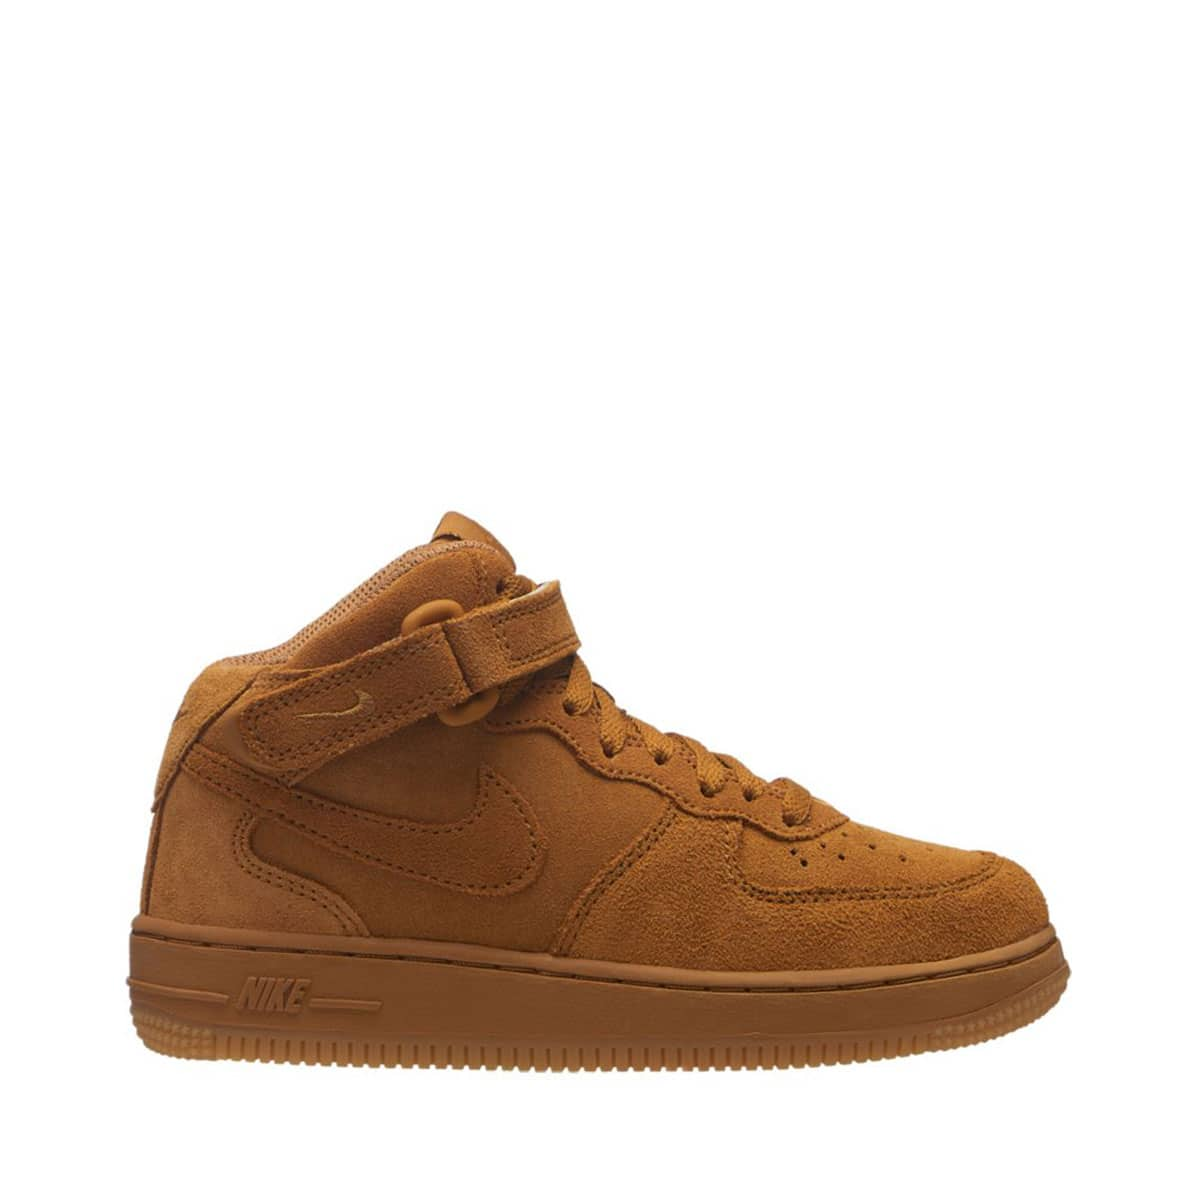 NIKE FORCE 1 MID LV8 (PS) WHEAT/WHEAT-GUM LIGHT BROWN 18HO-I_photo_large